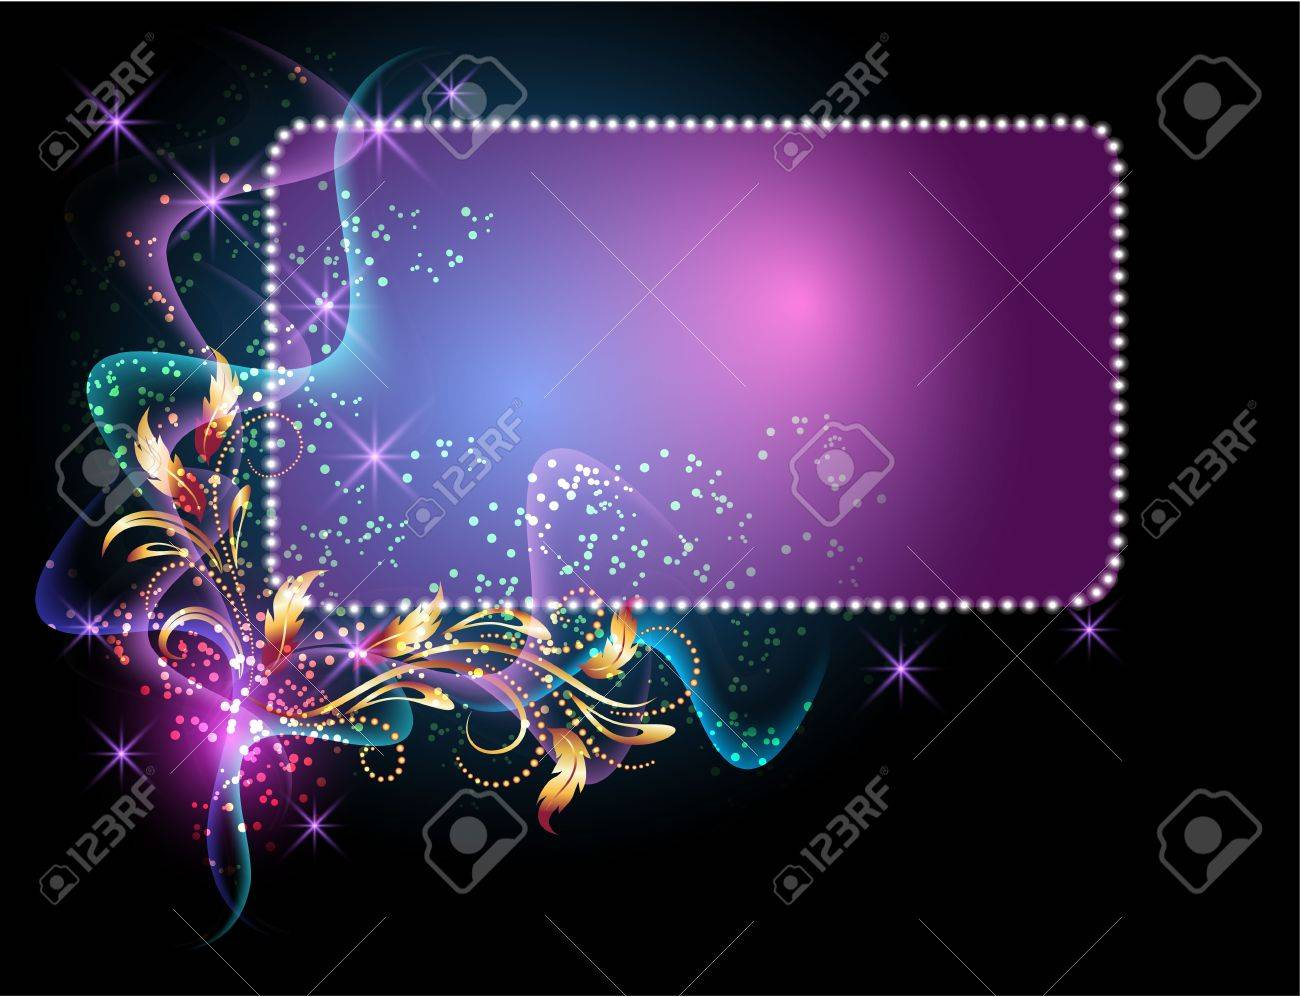 Glowing background with signboard, smoke, stars and golden ornament Stock Vector - 10194555